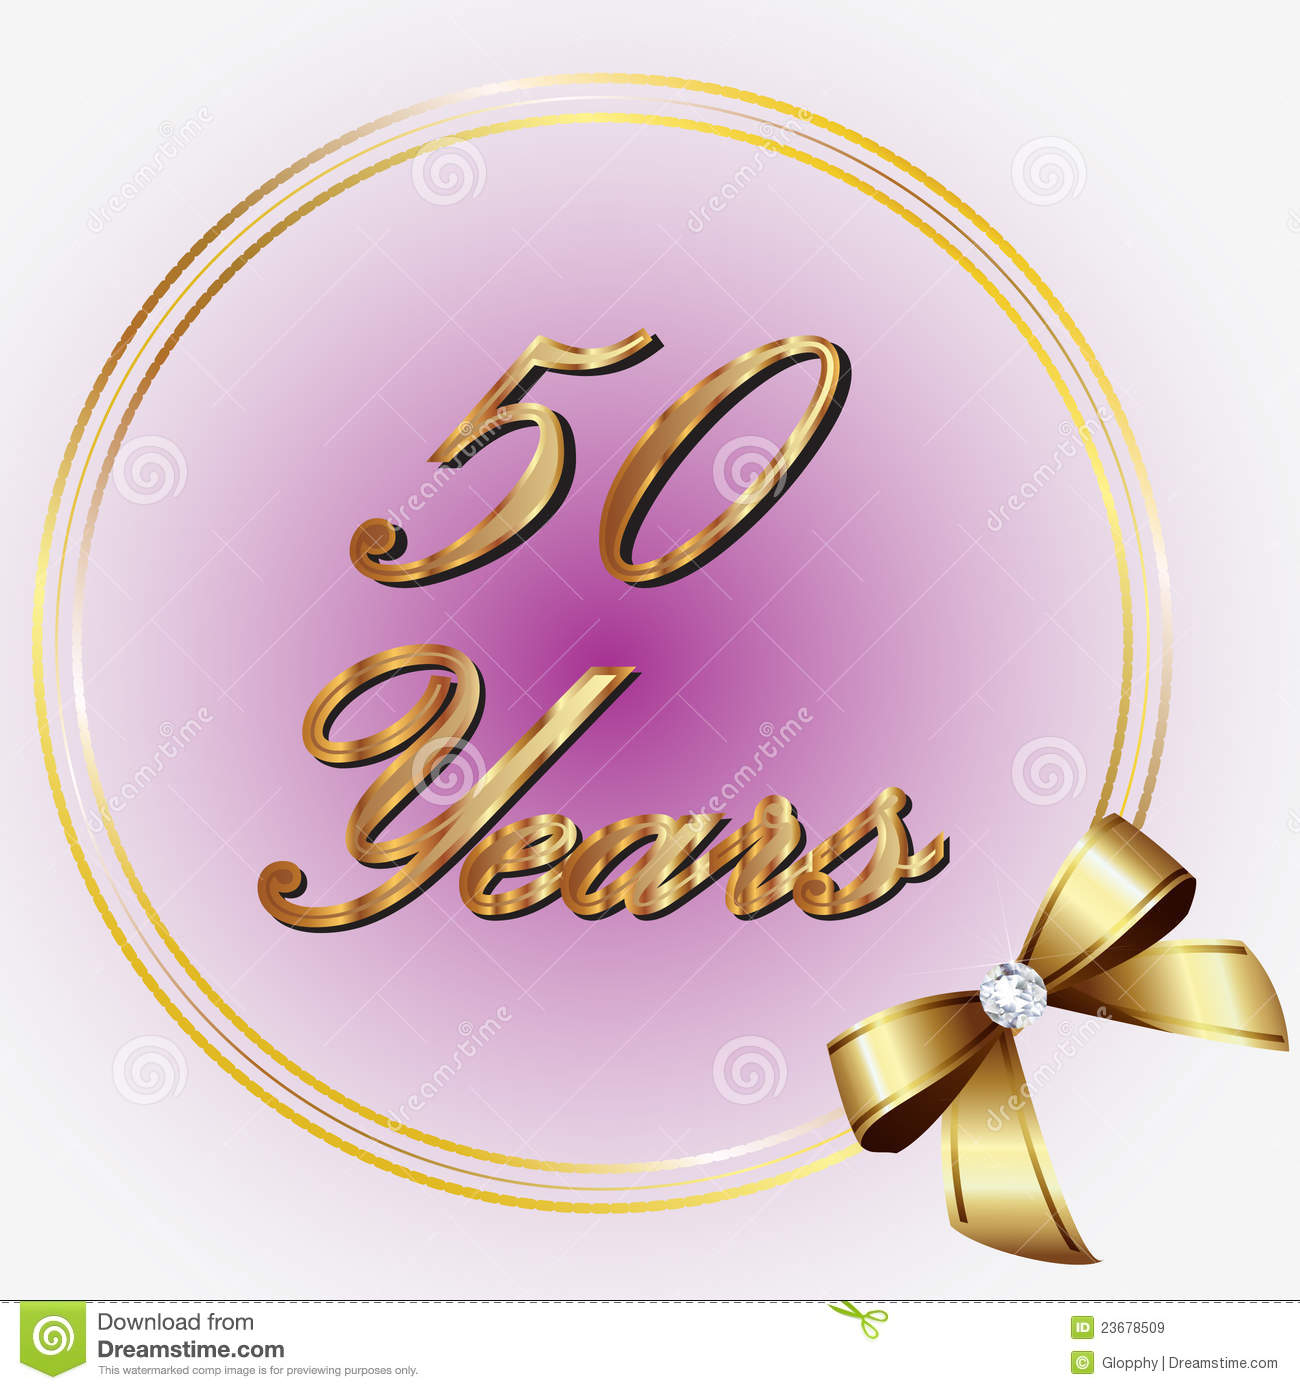 50 years anniversary royalty free stock images image 23678509